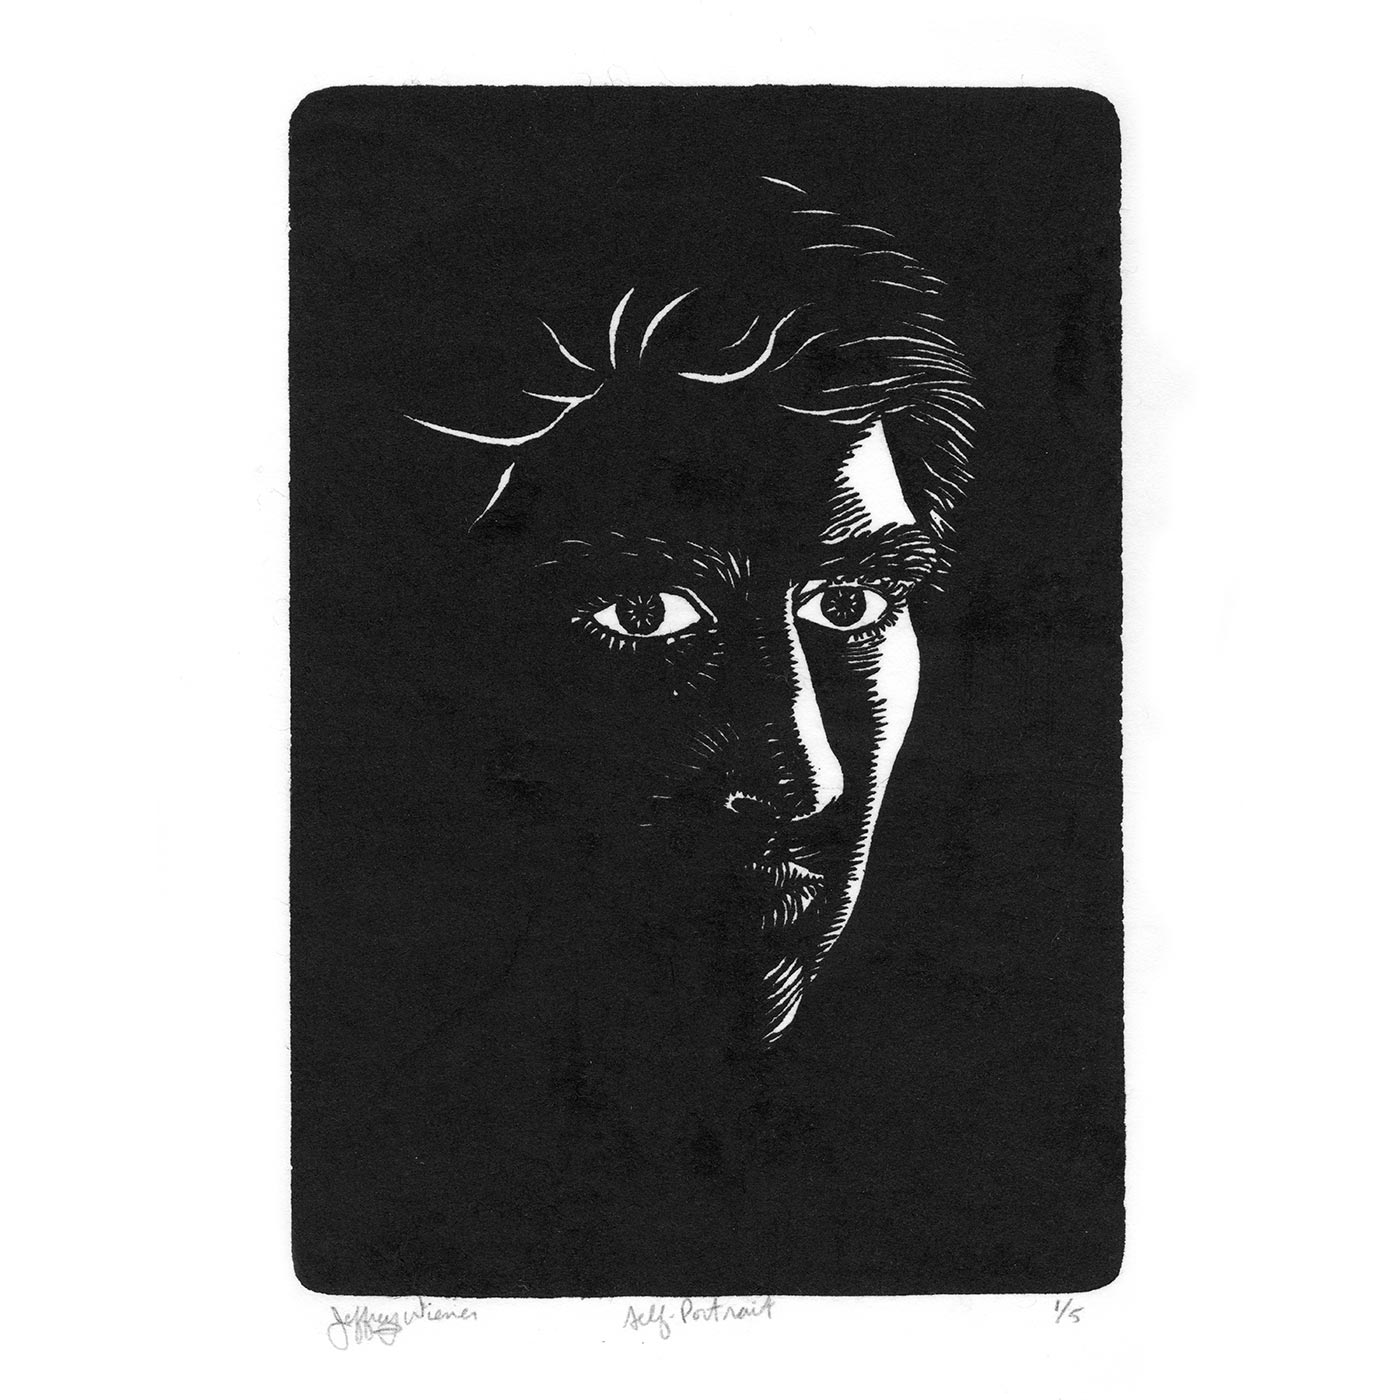 Self-Portrait_Woodcut_1982